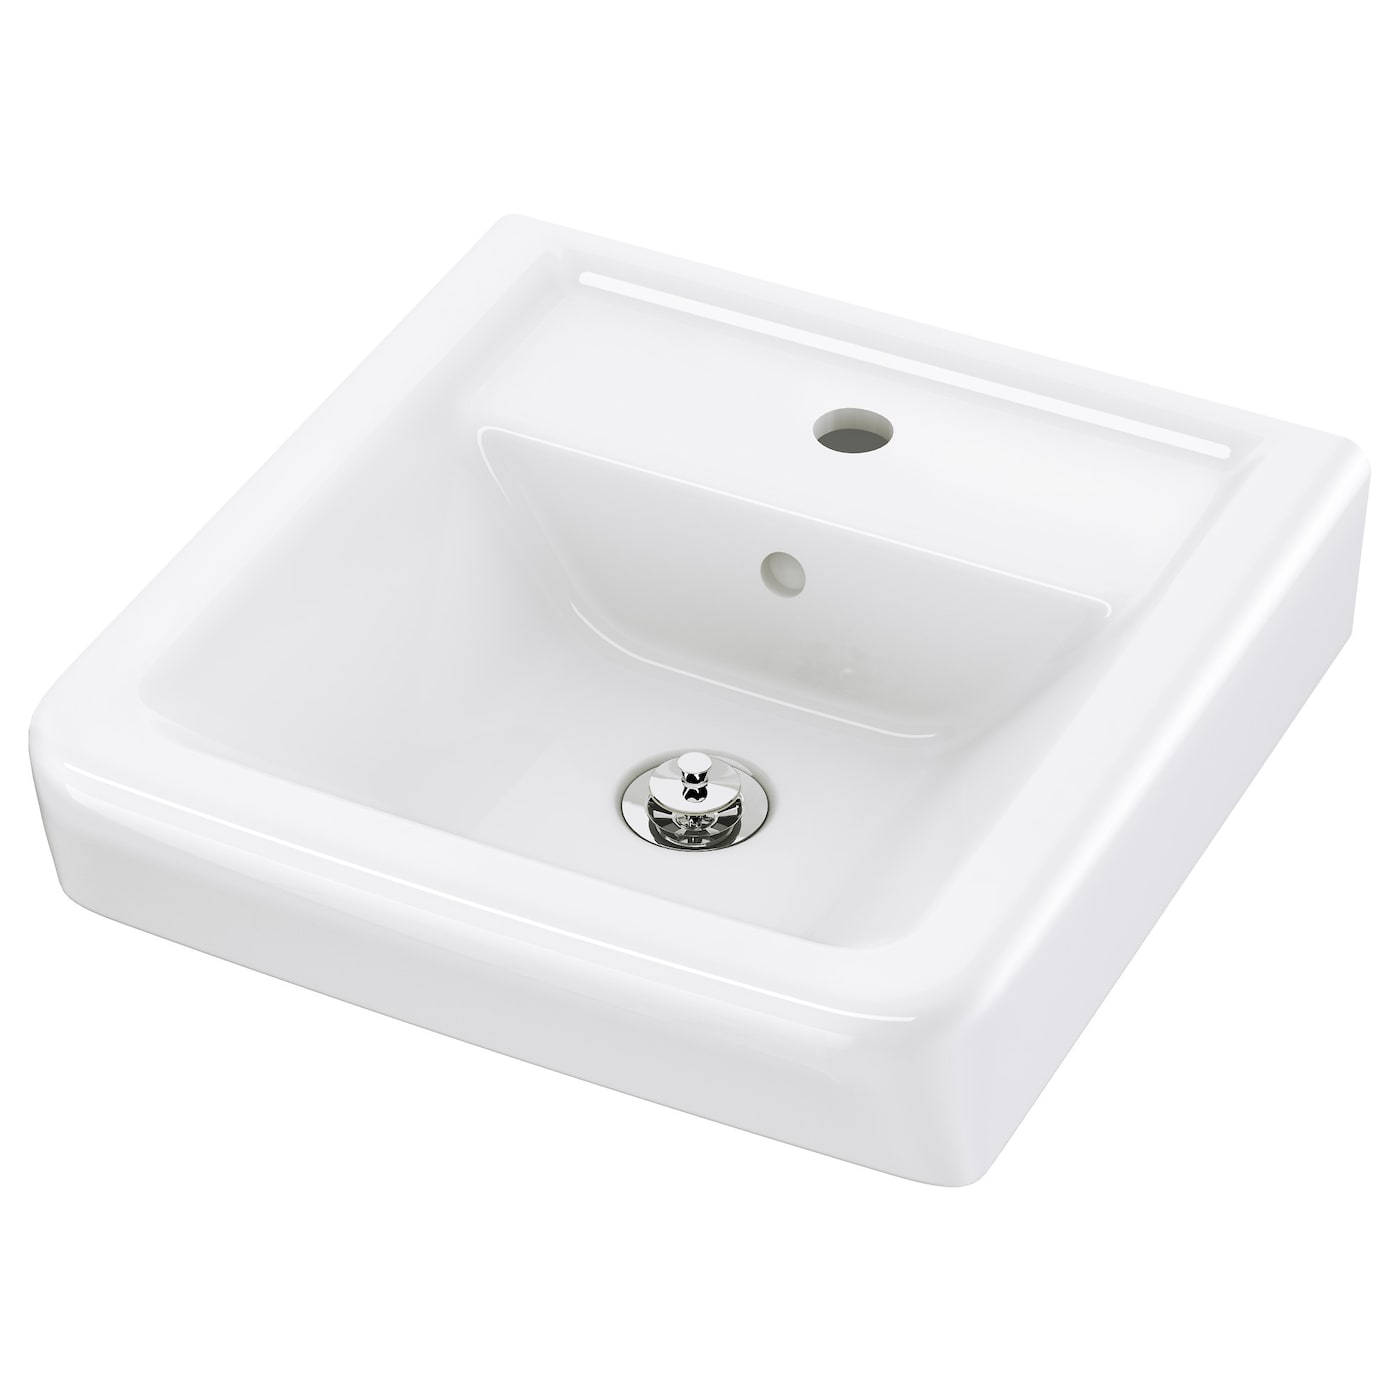 Bathroom sinks wash basins ikea for Mini lavabo salle de bain